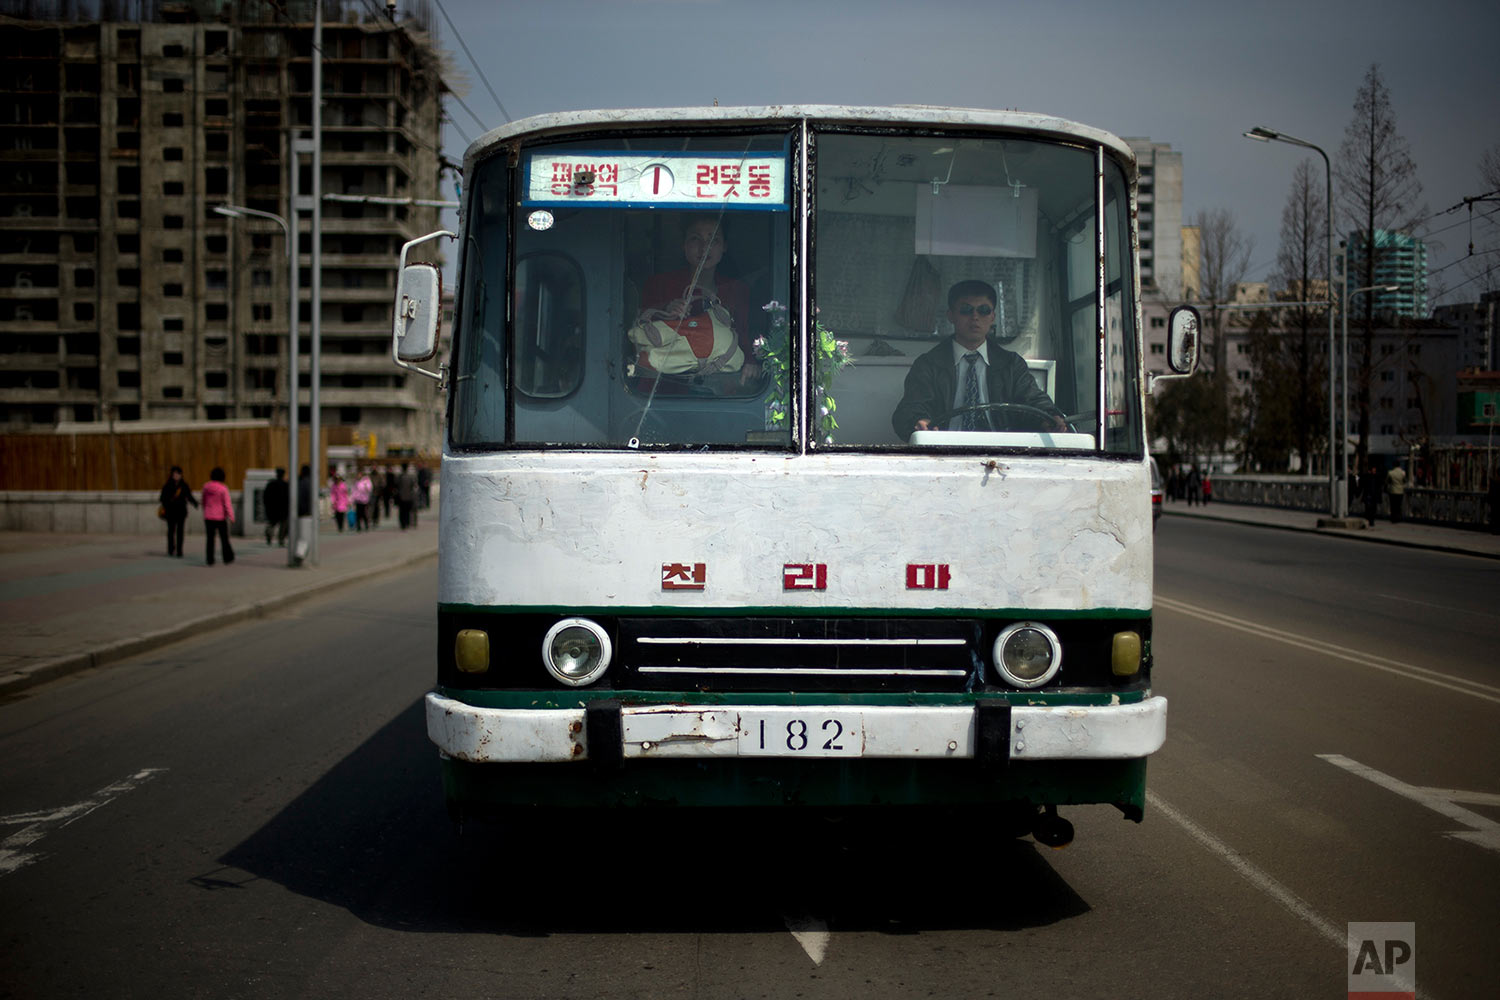 A man drives a bus while a woman looks out through the cracked windshield in Pyongyang, North Korea, on April 15, 2013. (AP Photo/Alexander F. Yuan)